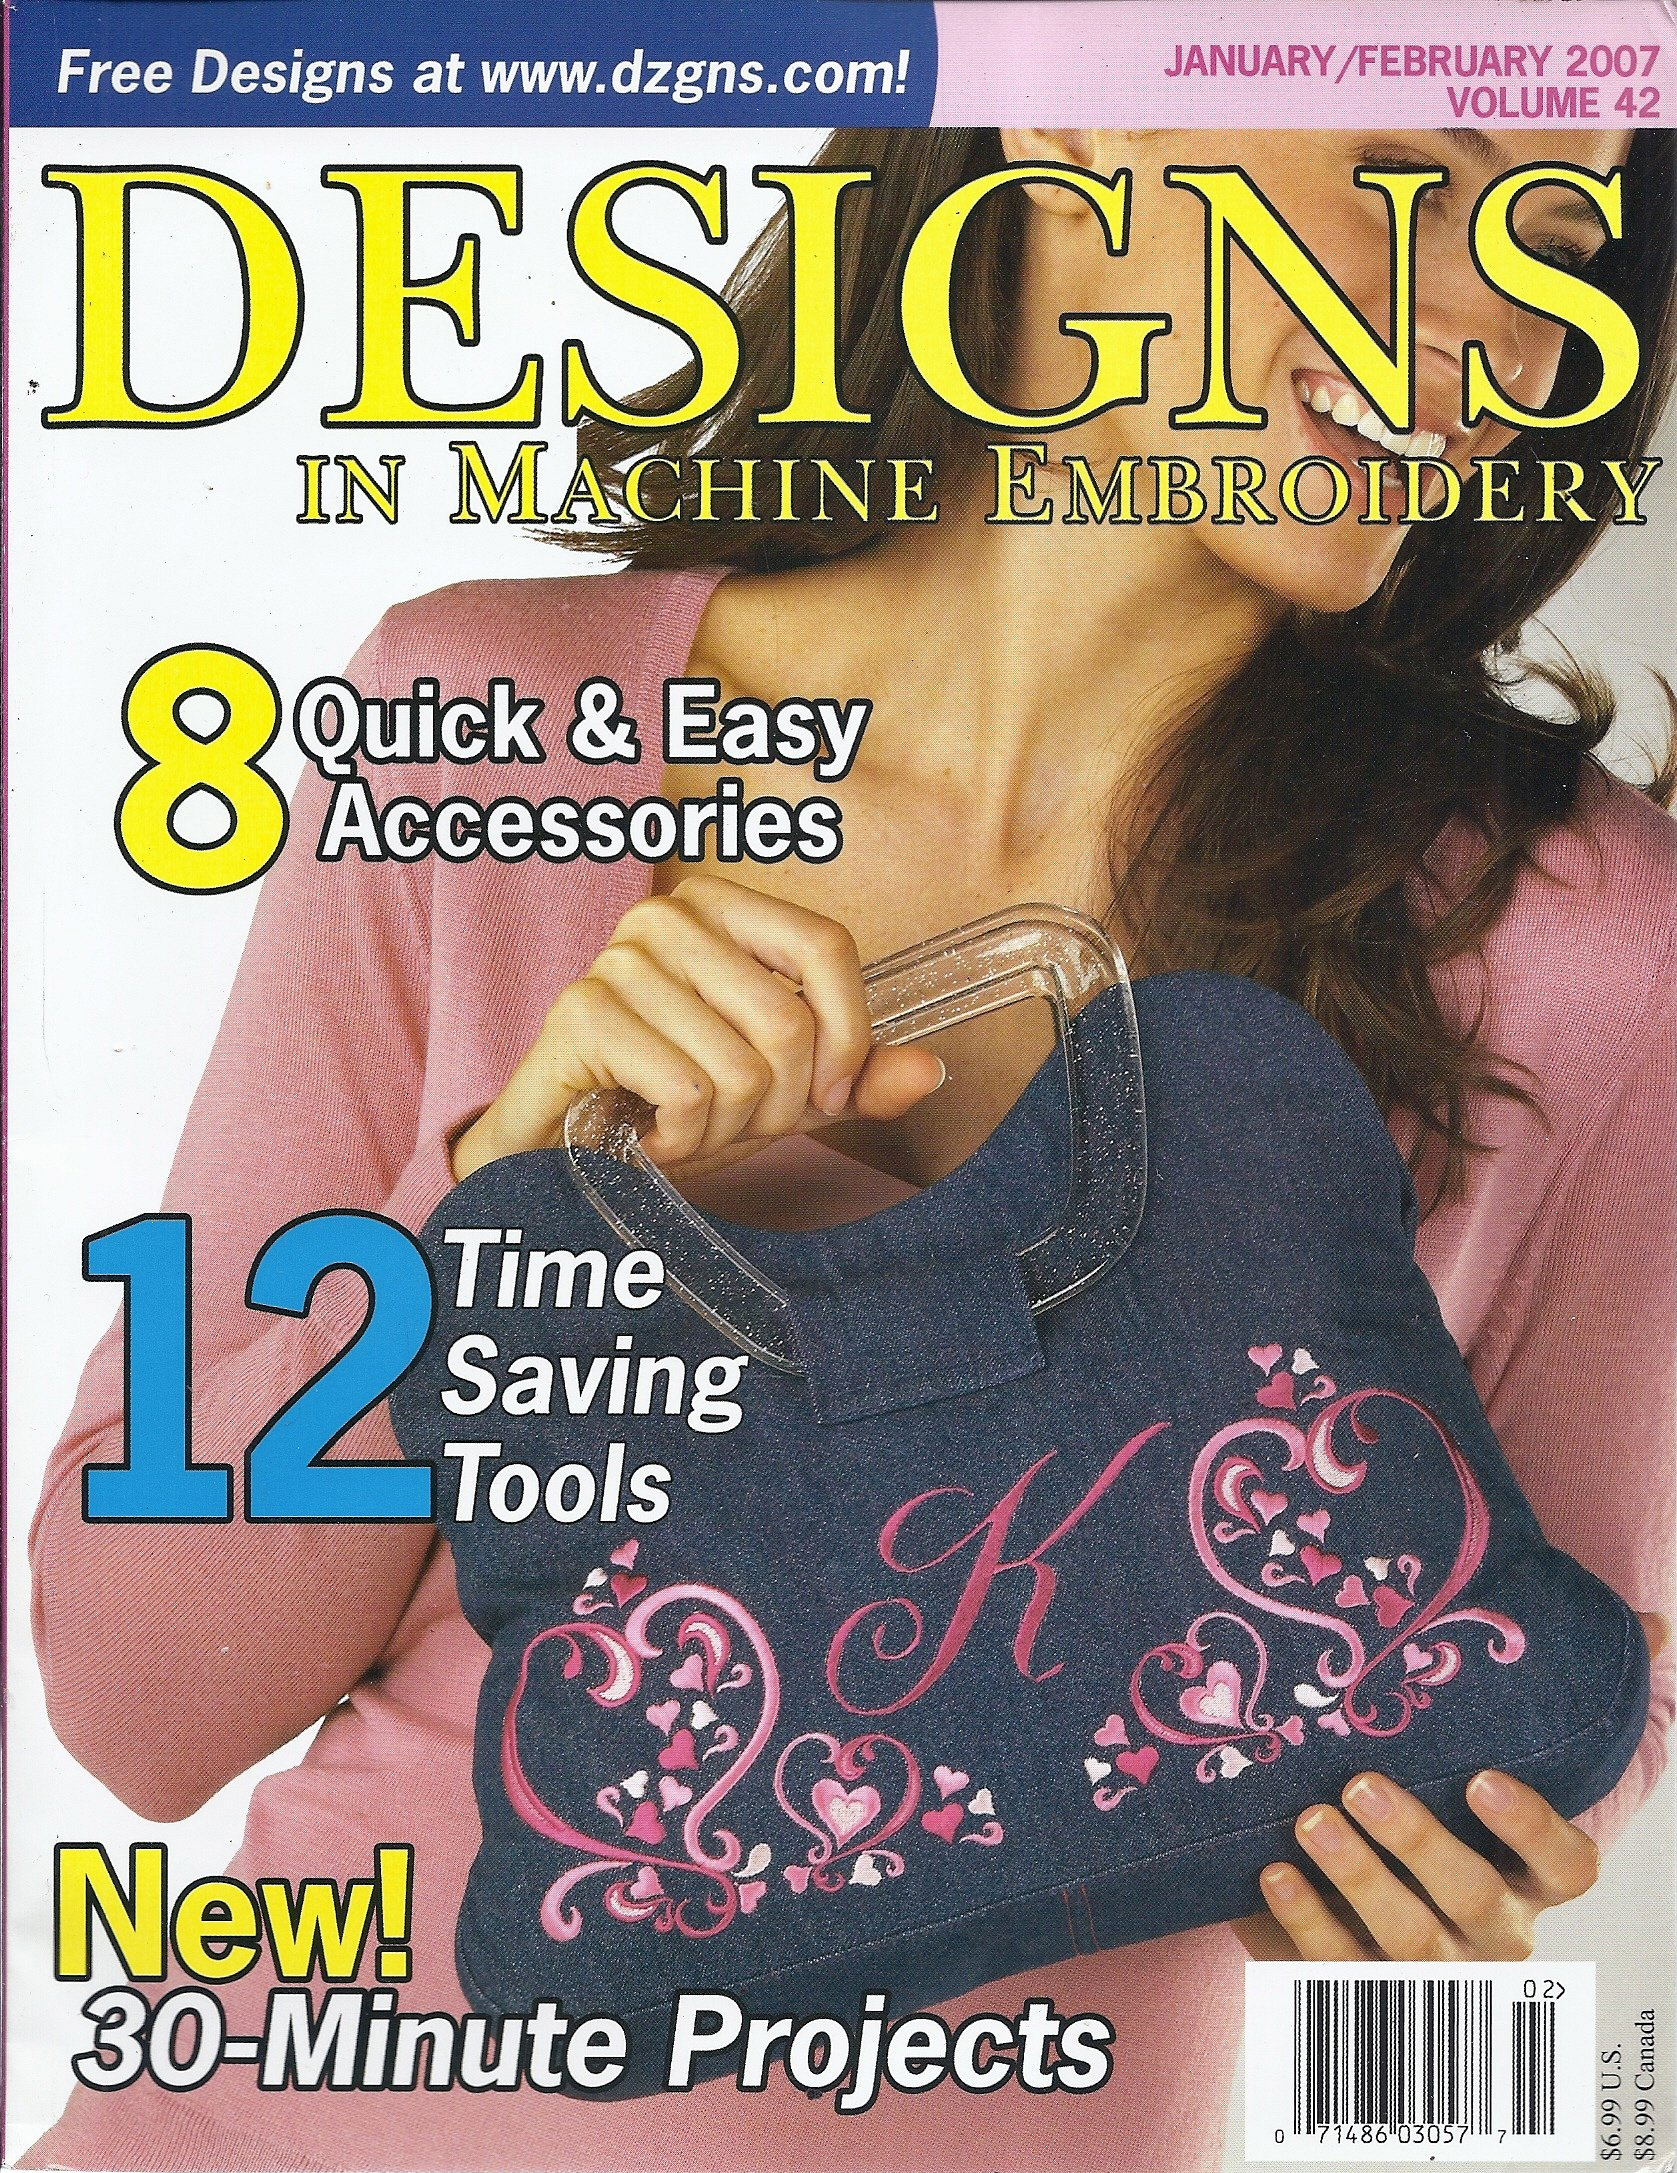 Download Designs in Machine Embroidery (January/February 2007) PDF